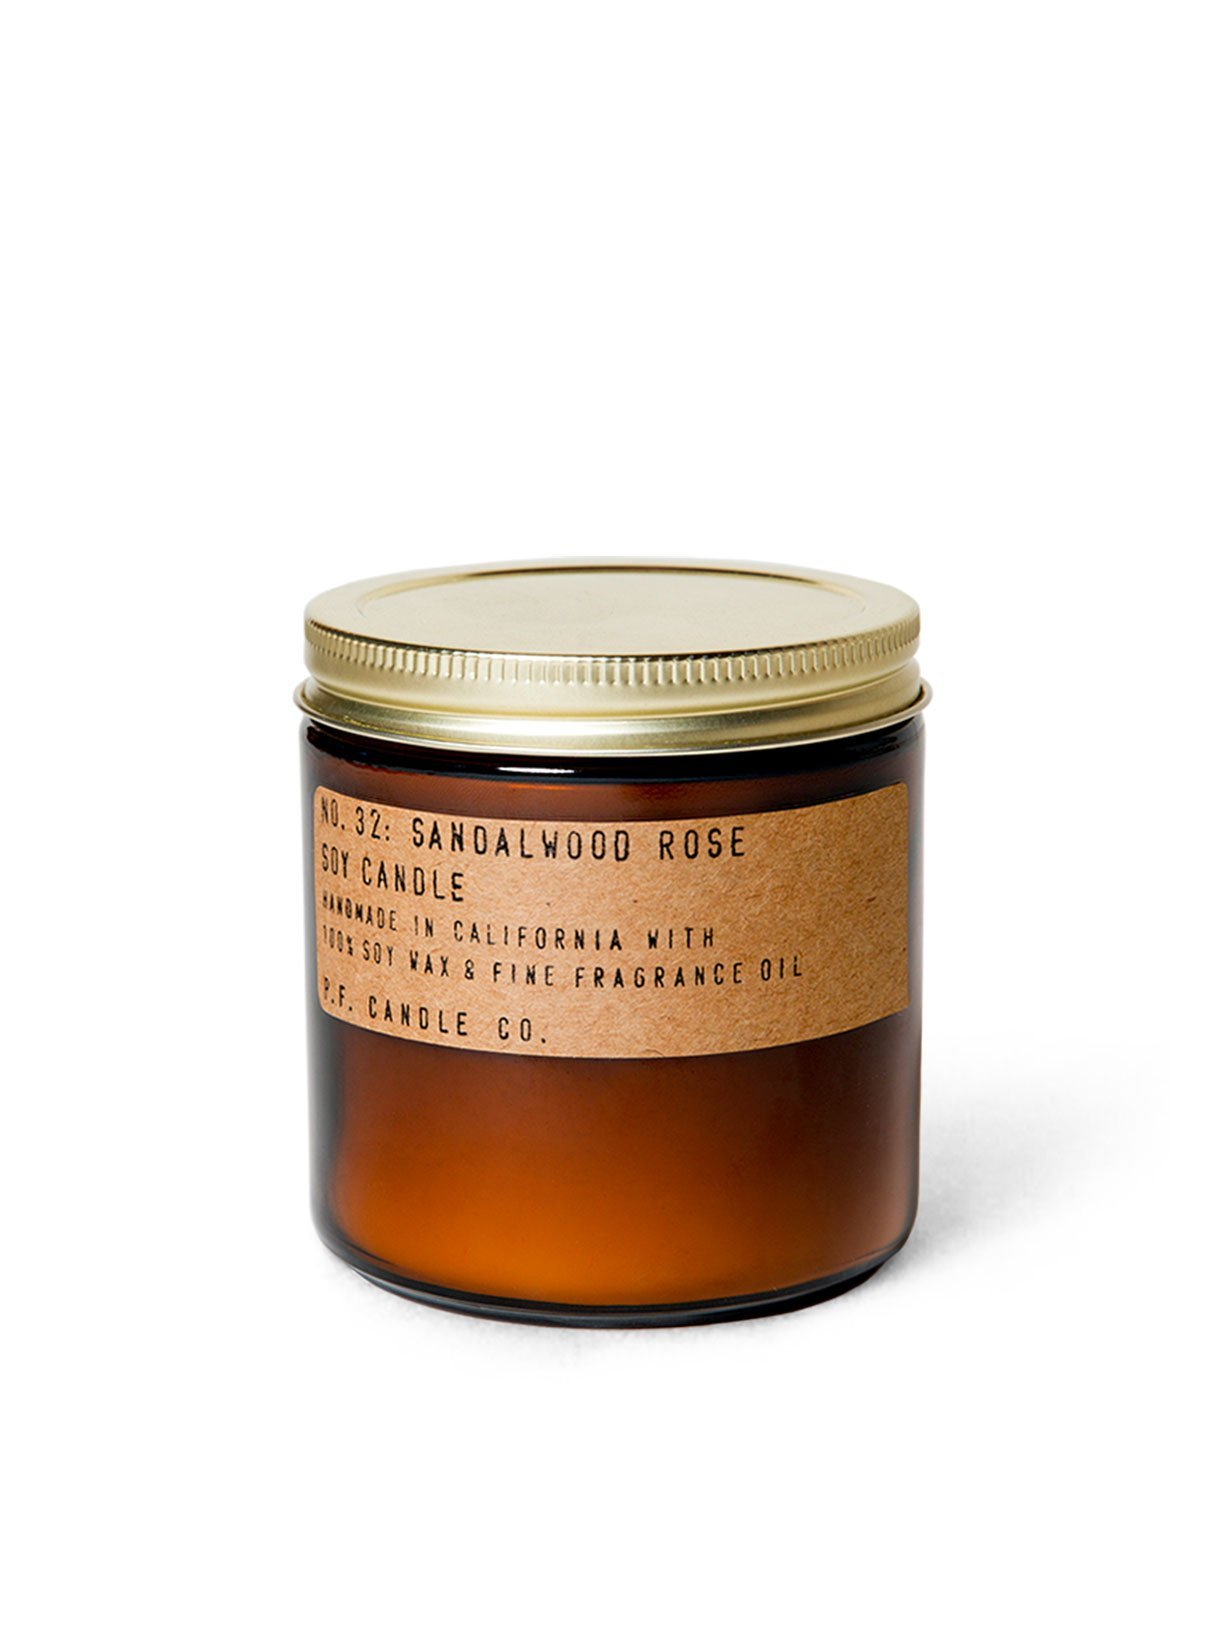 Sandalwood rose - candle - standard